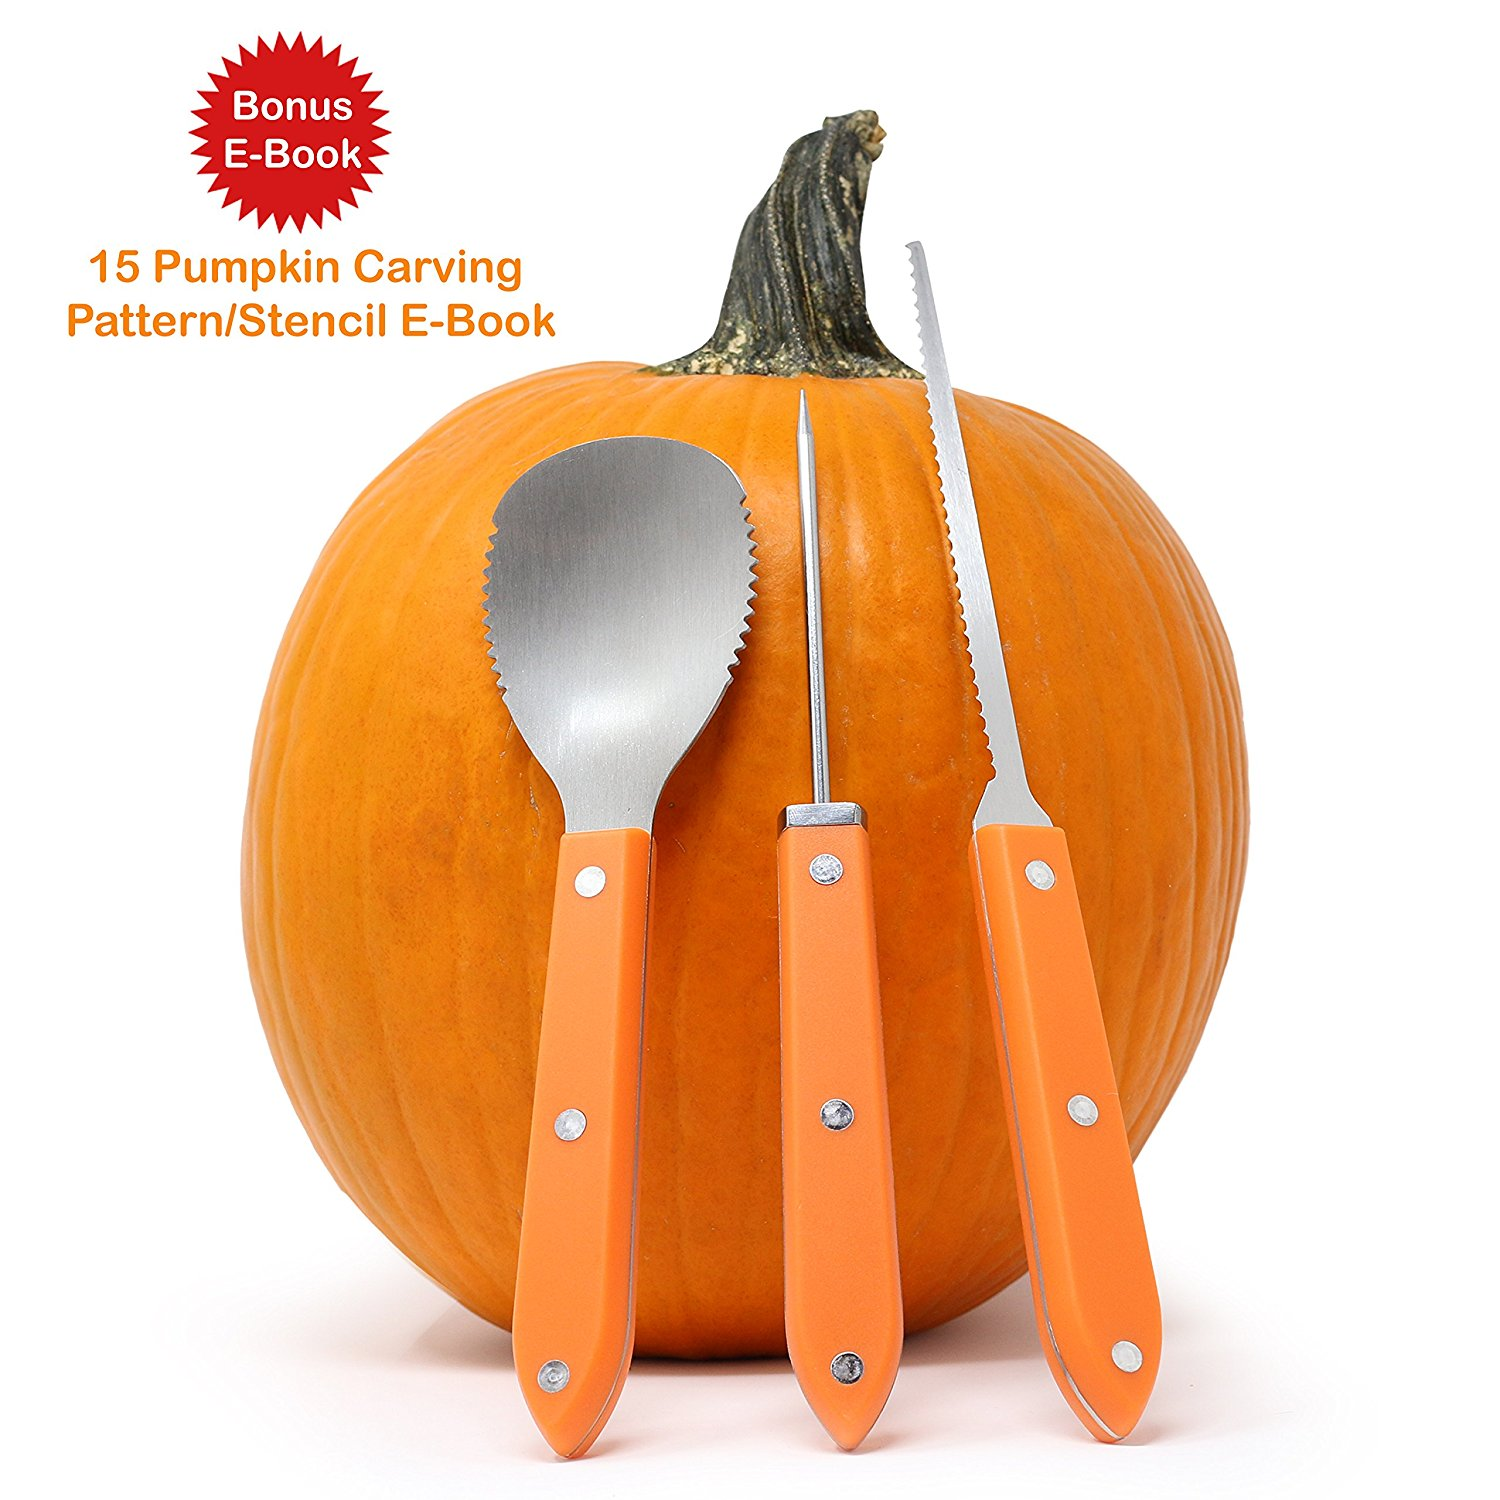 Premium 3 Piece Pumpkin Carving Kit (Plus 15 Pumpkin Carving Pattern/Stencil E-Book) Sturdy Stainless Steel Pumpkin Tools Crafted For Efficiency While Carving Your Pumpkin, by